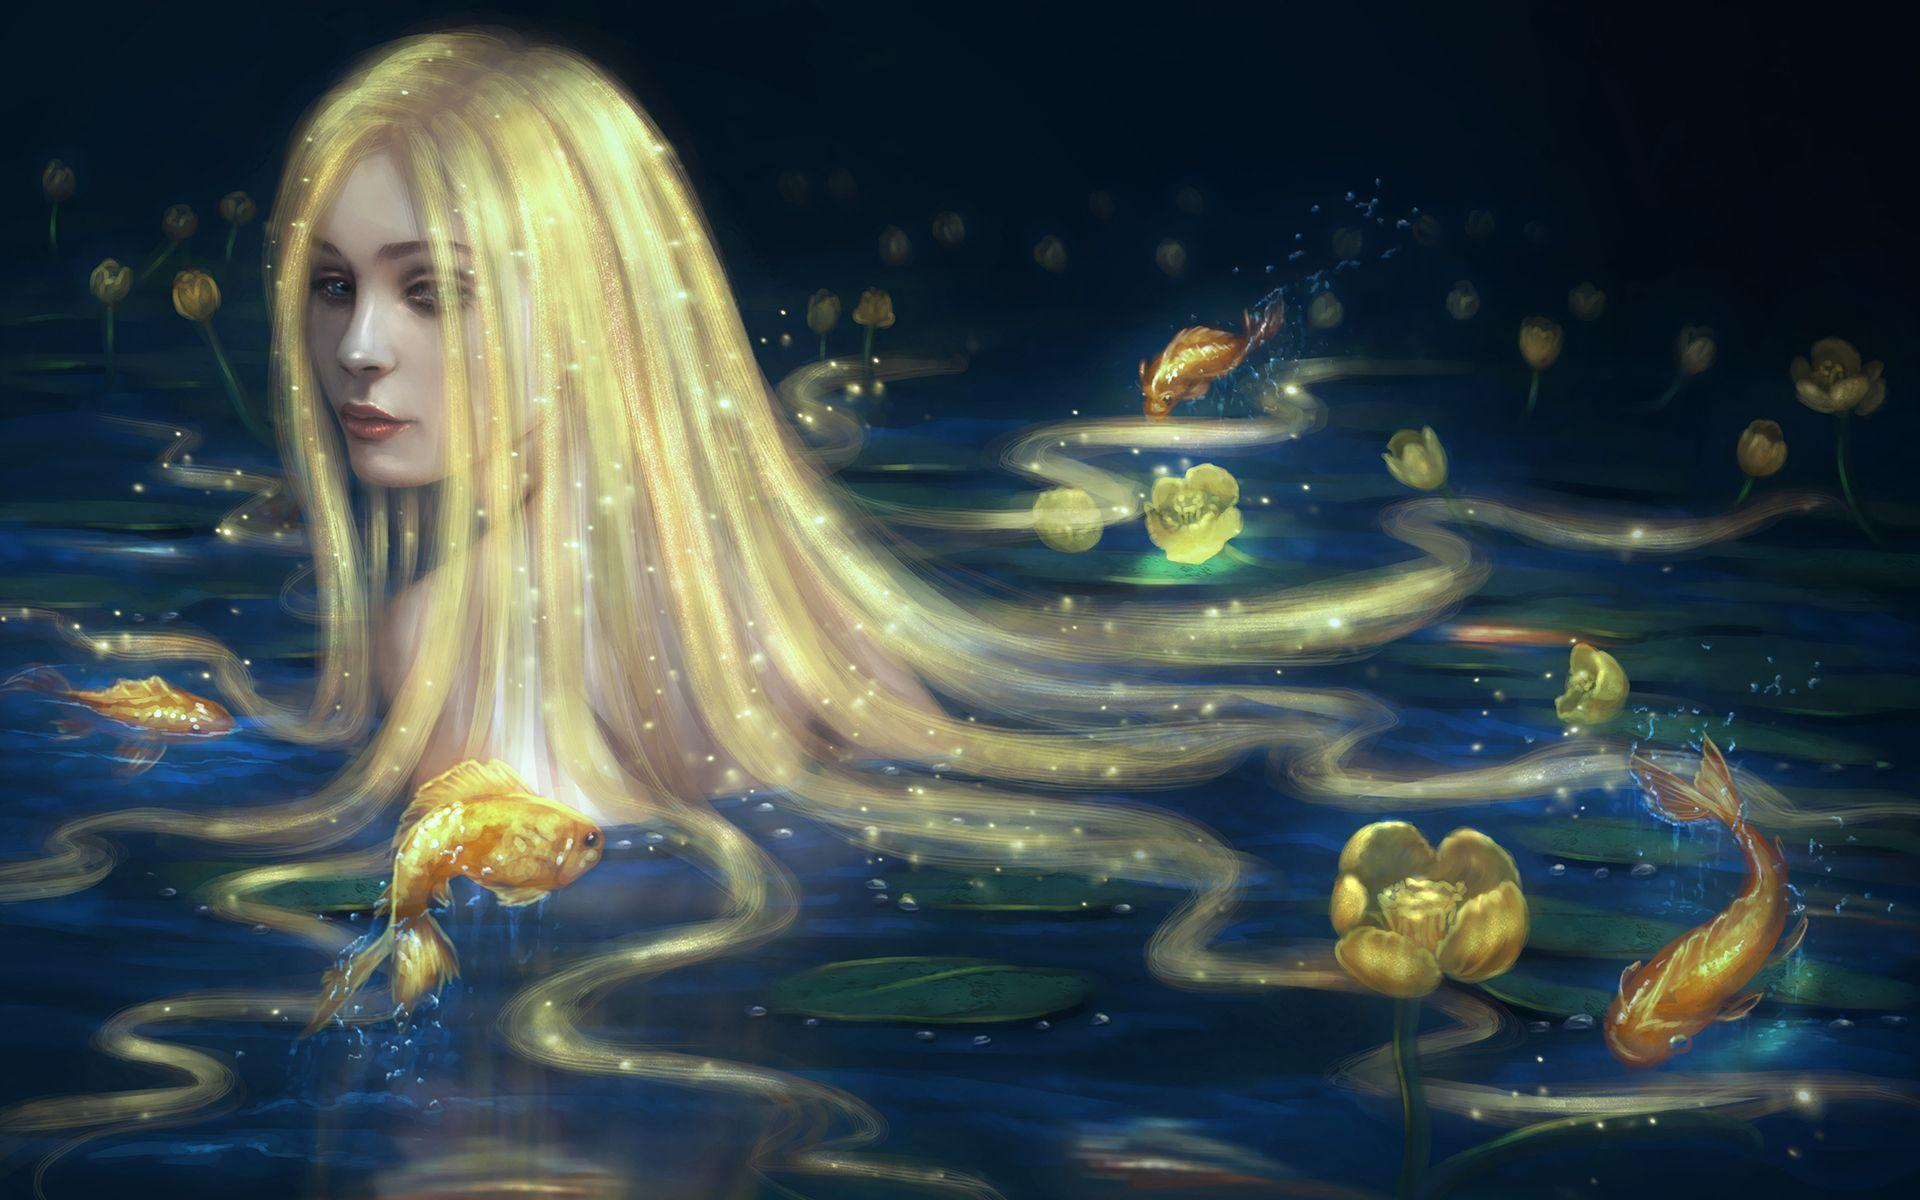 3d Moving Wallpaper For Pc Desktop Free Download Hd Girl With Golden Hair Taking A Bath Wallpaper